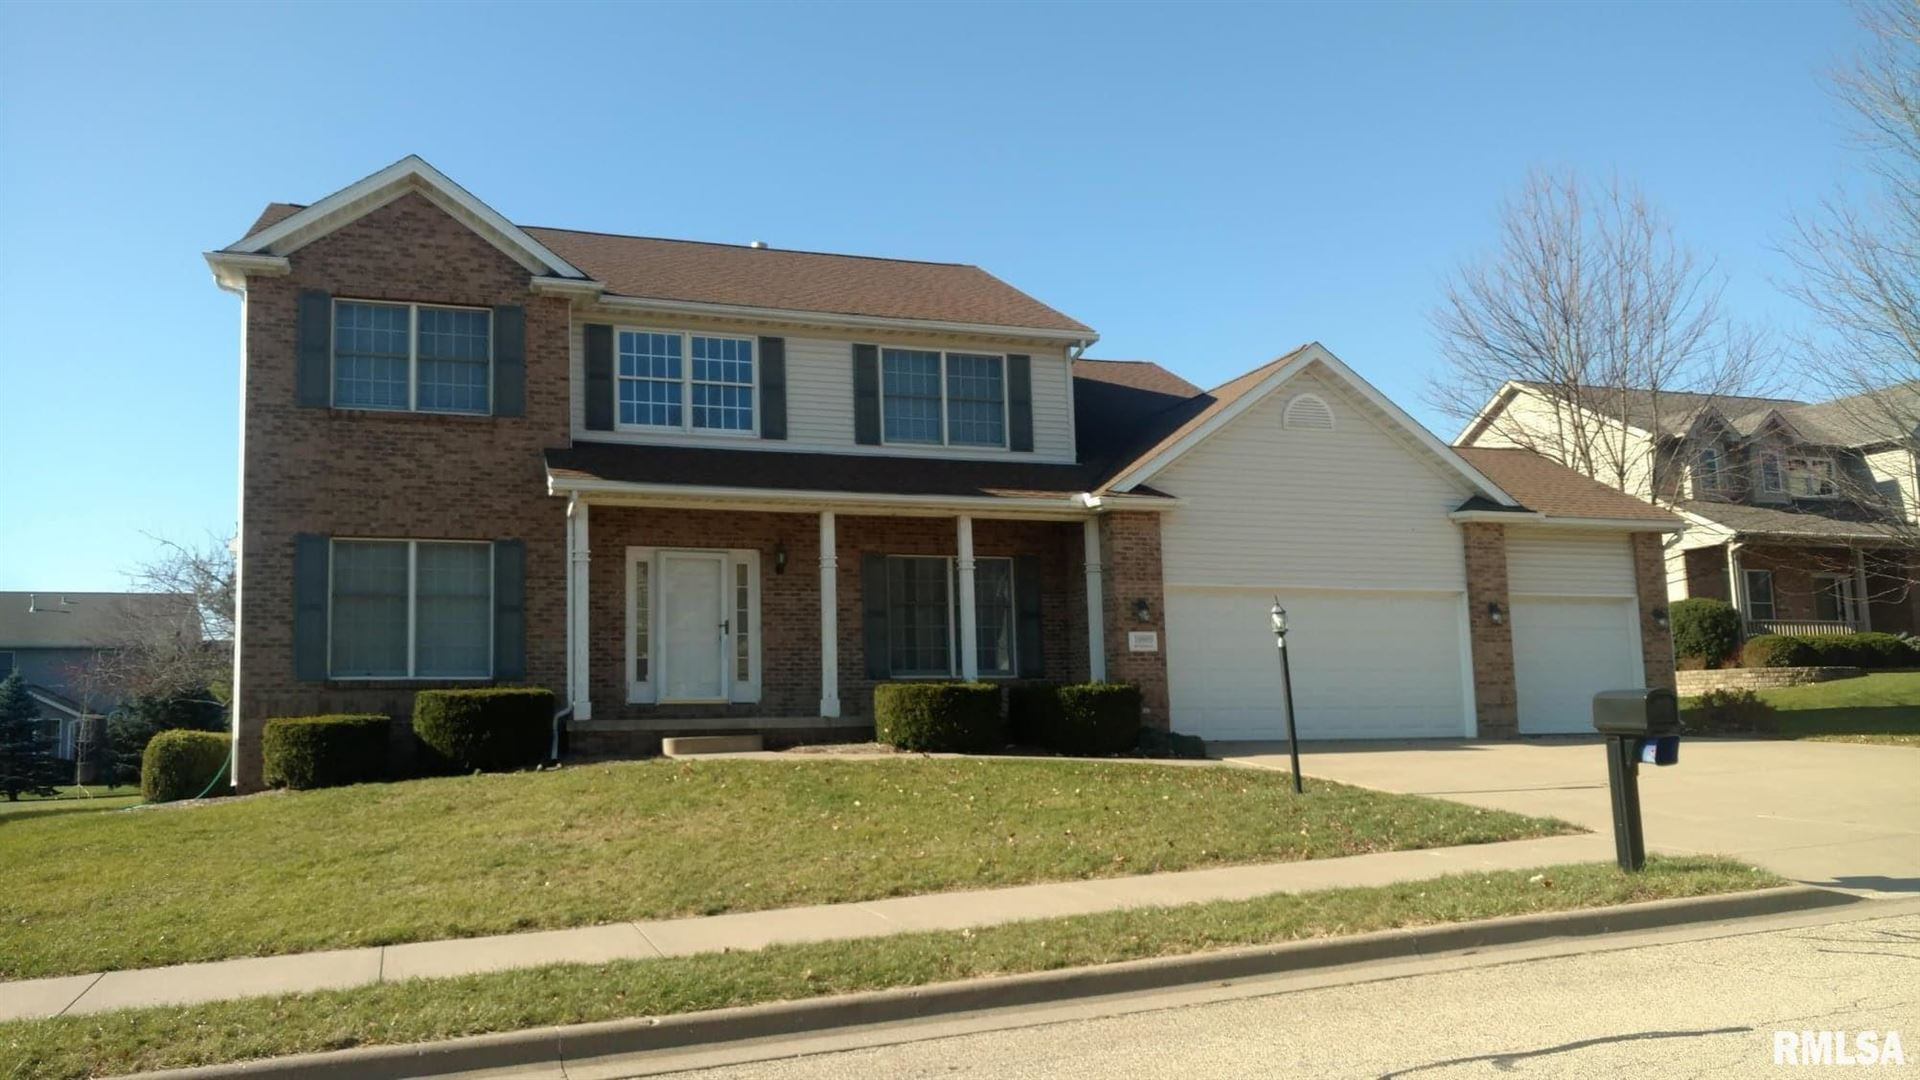 10809 N BODELL Drive, Peoria, IL 61615 - #: PA1220703